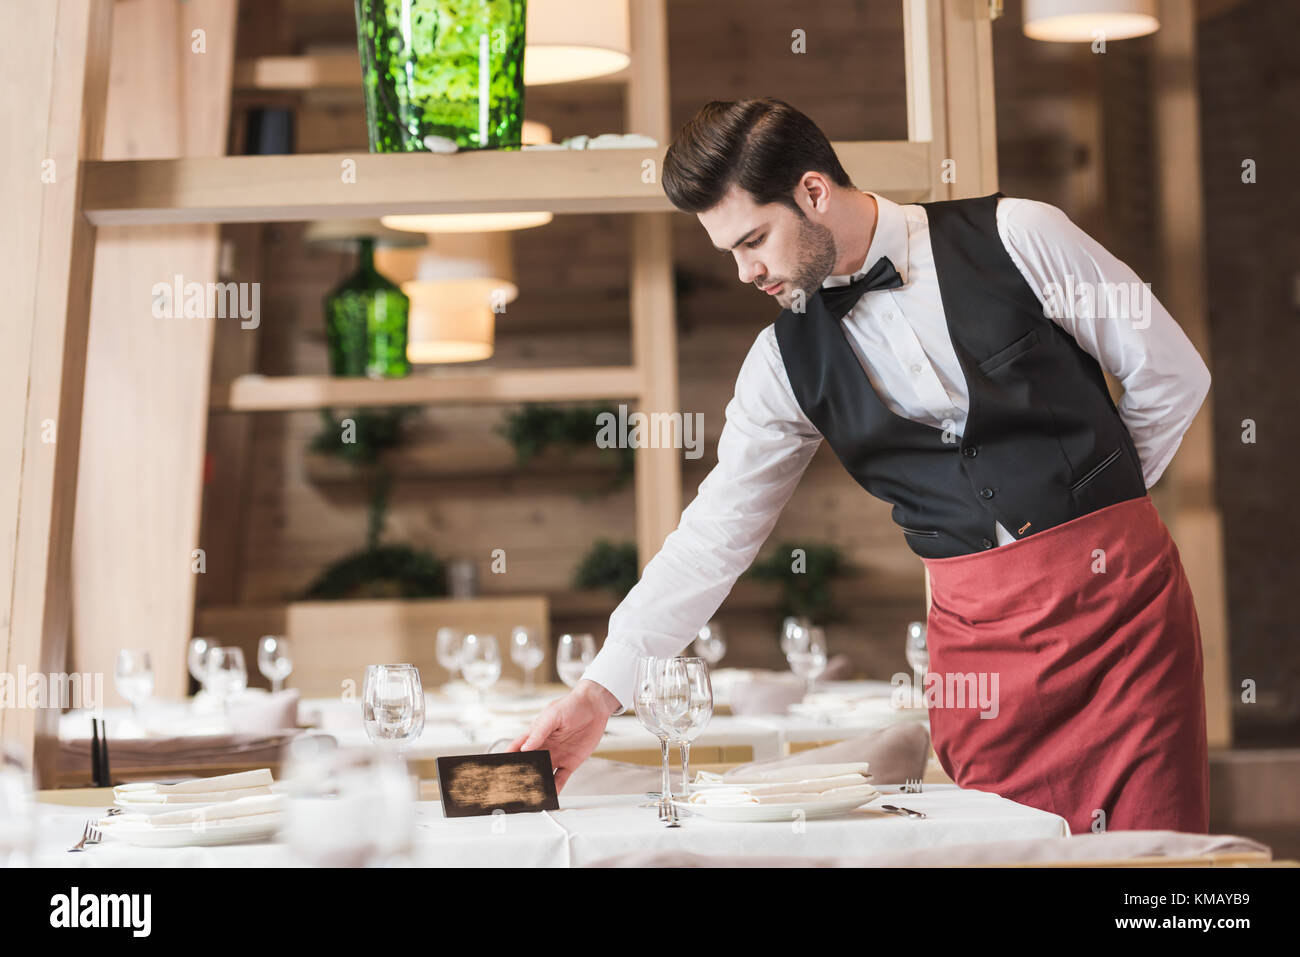 Waiter putting reserved sign - Stock Image